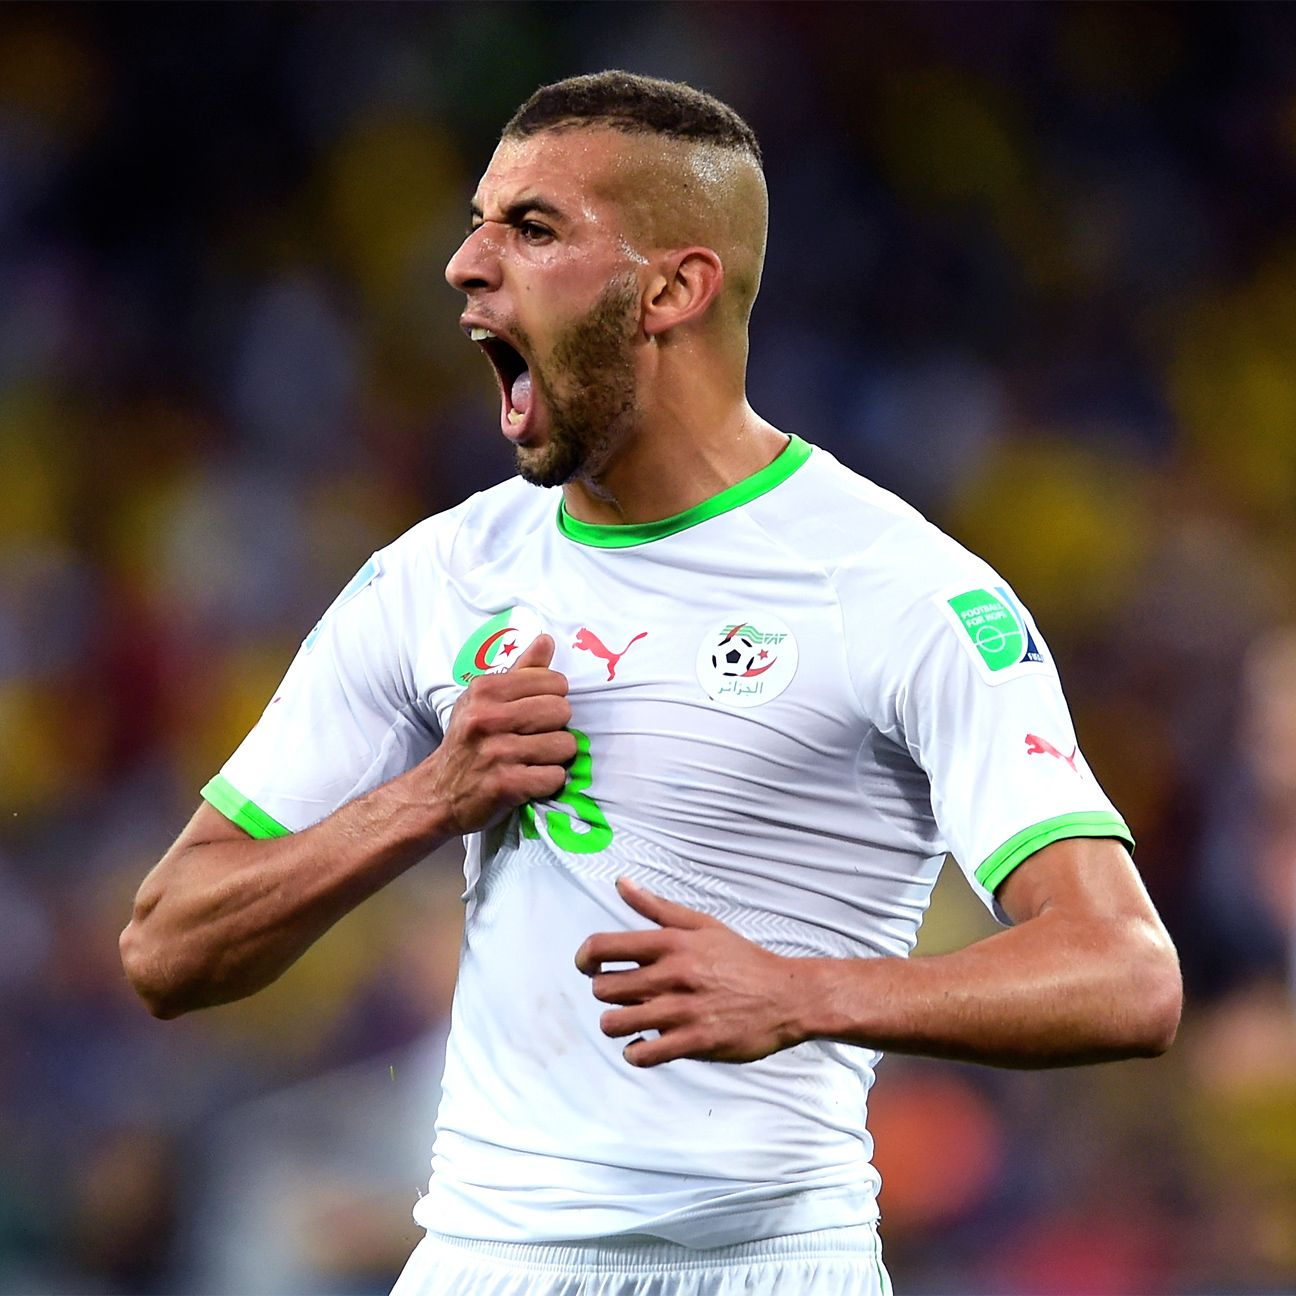 Islam Slimani spearheaded Algeria's run to the last 16 of the World Cup.